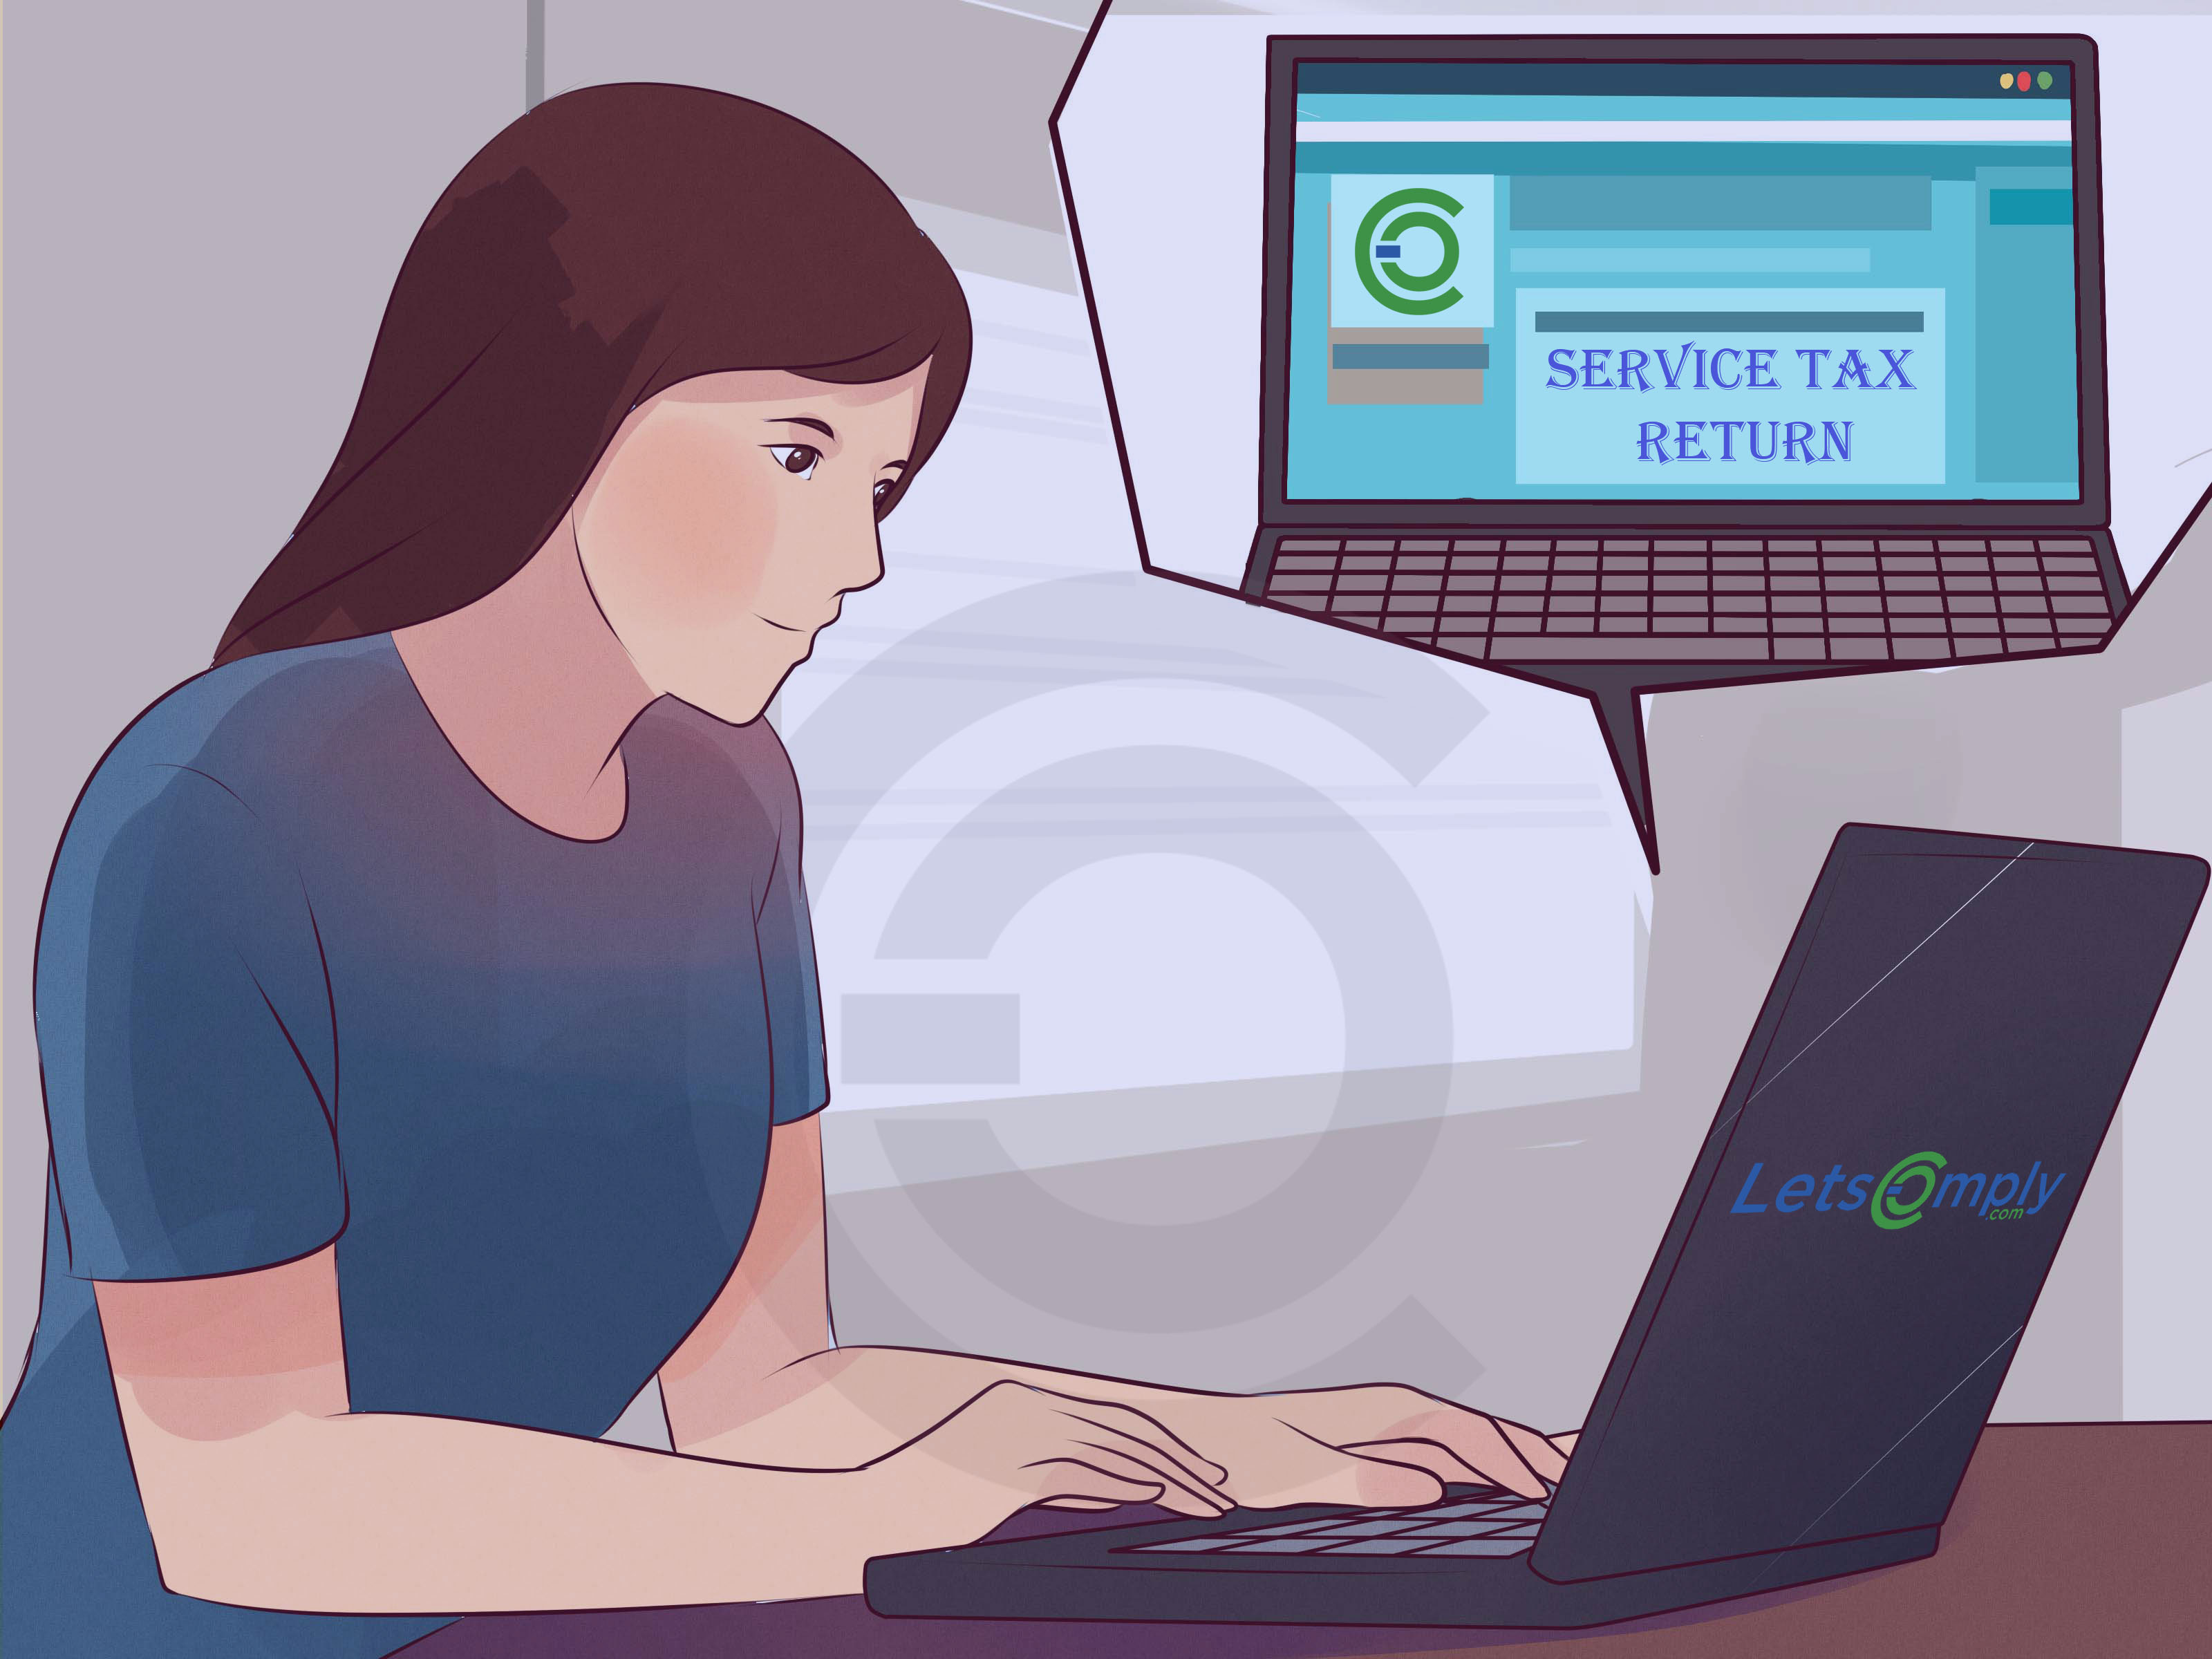 Steps for filing service tax return online